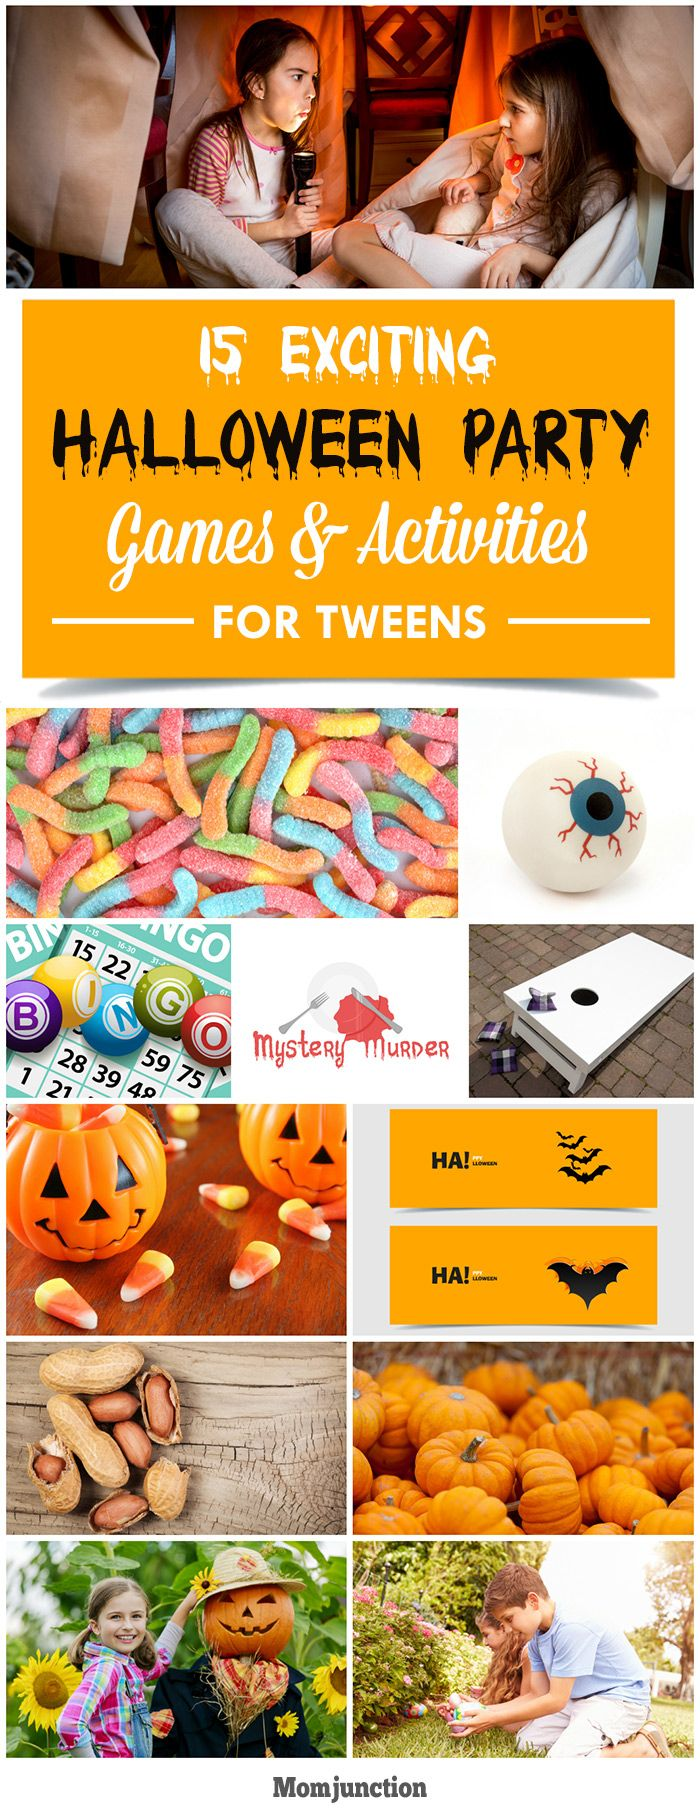 15 Exciting Halloween Party Games & Activities For Tweens: Here are 15 exciting games and activities that will make the #Halloween party truly memorable for your little tweens.